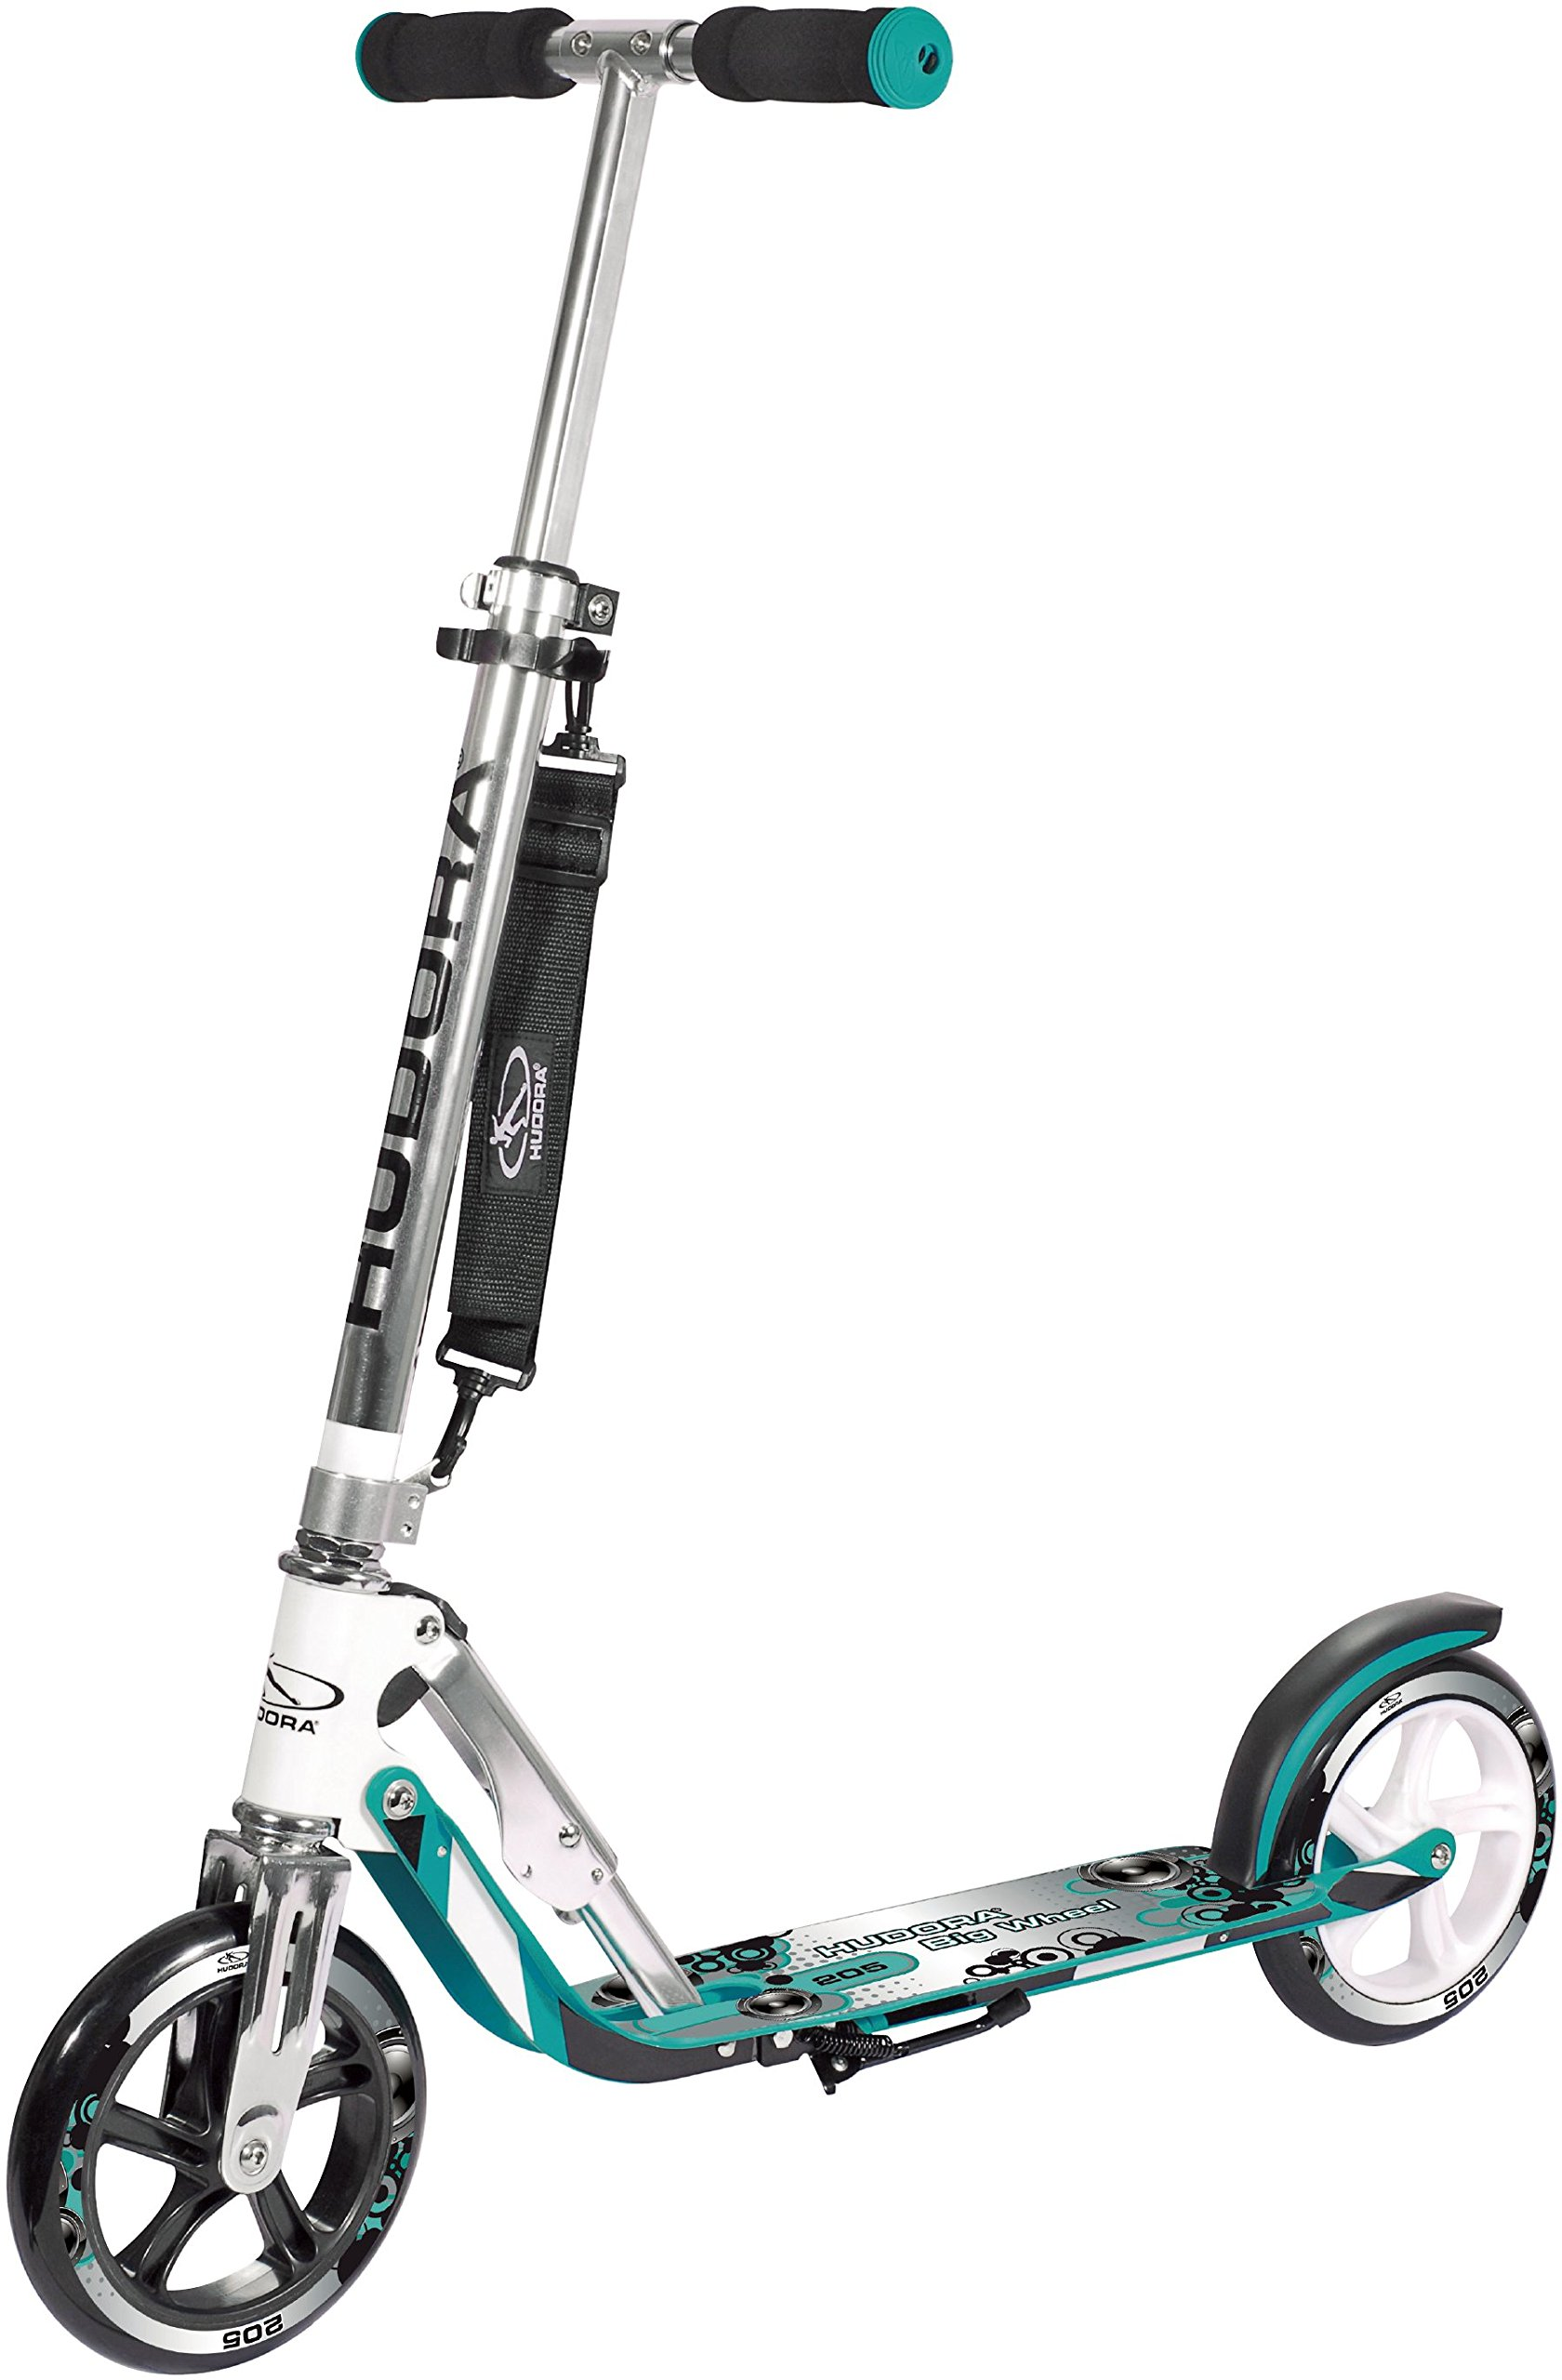 HUDORA 205 Adult Folding Kick Scooter- 2 Big PU Wheels 205 mm, Adjustable Bar,Reinforced Deck by HUDORA